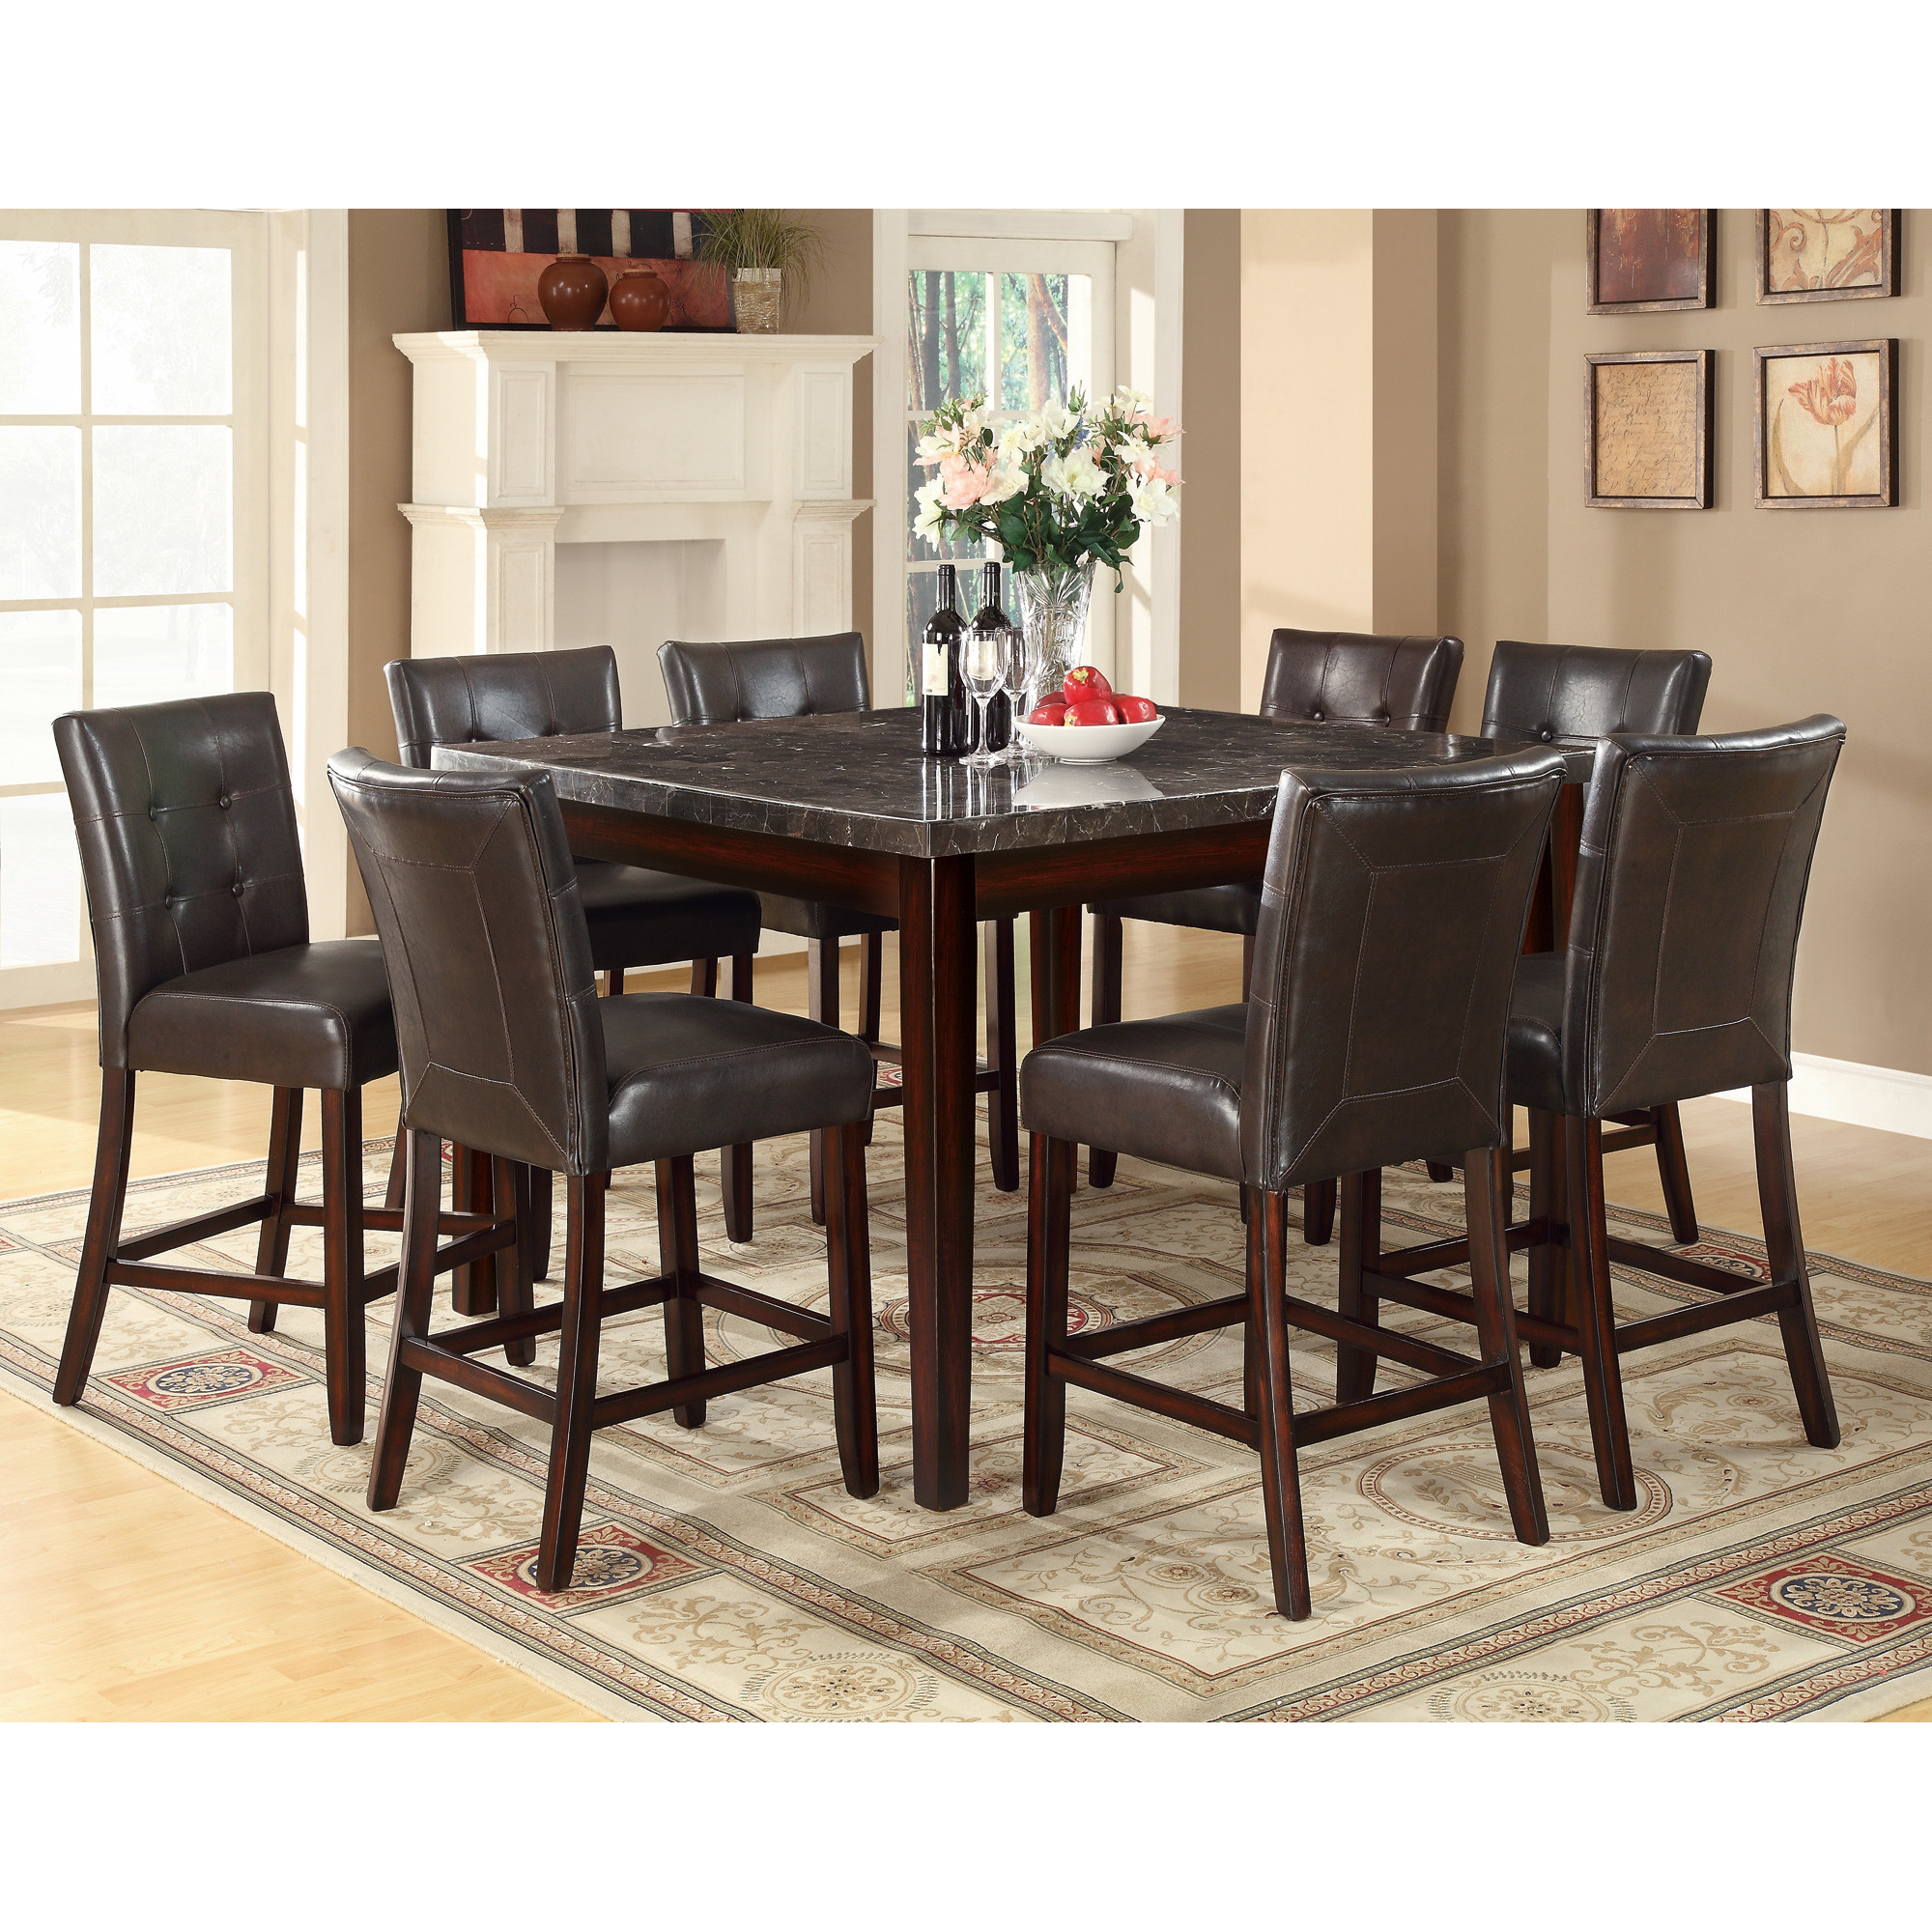 Best ideas about Dining Table Height . Save or Pin Alcott Hill Cincinnati Counter Height Dining Table Now.